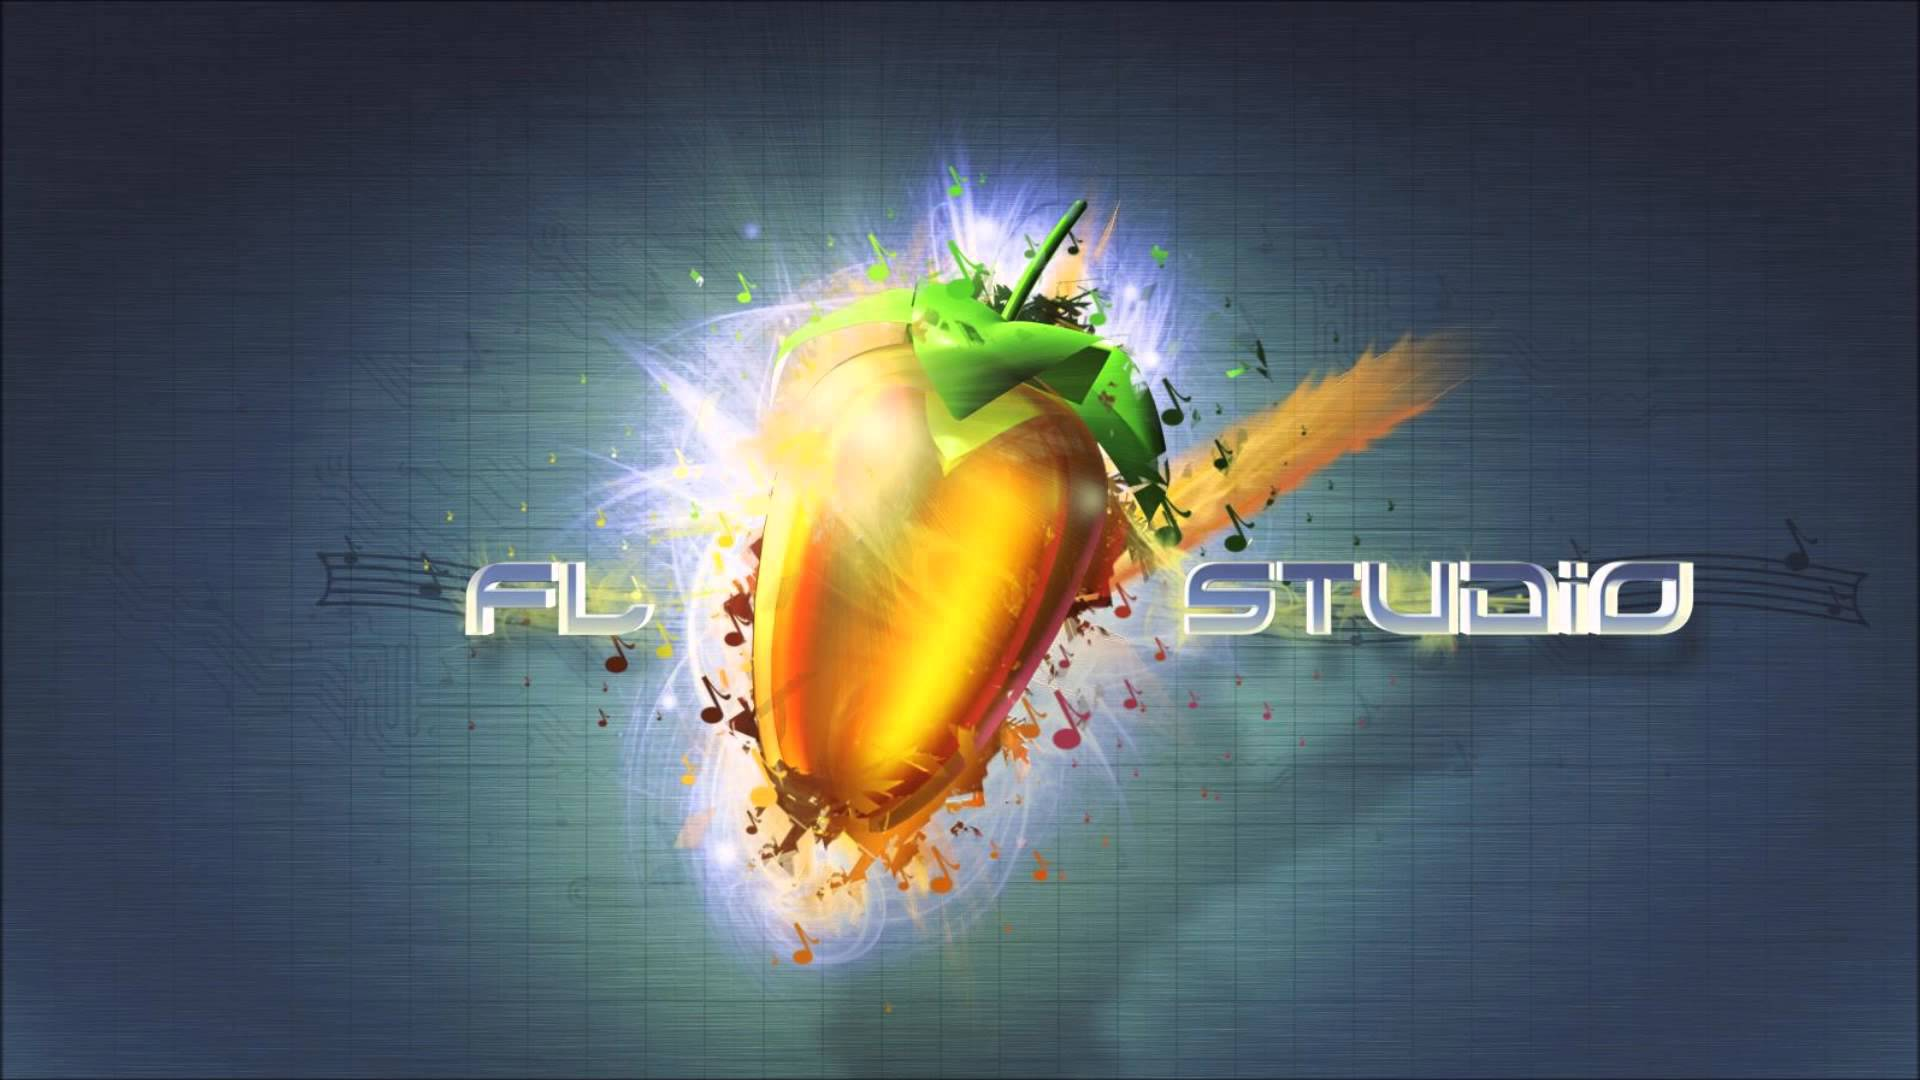 FL Studio Wallpapers Group (59+)